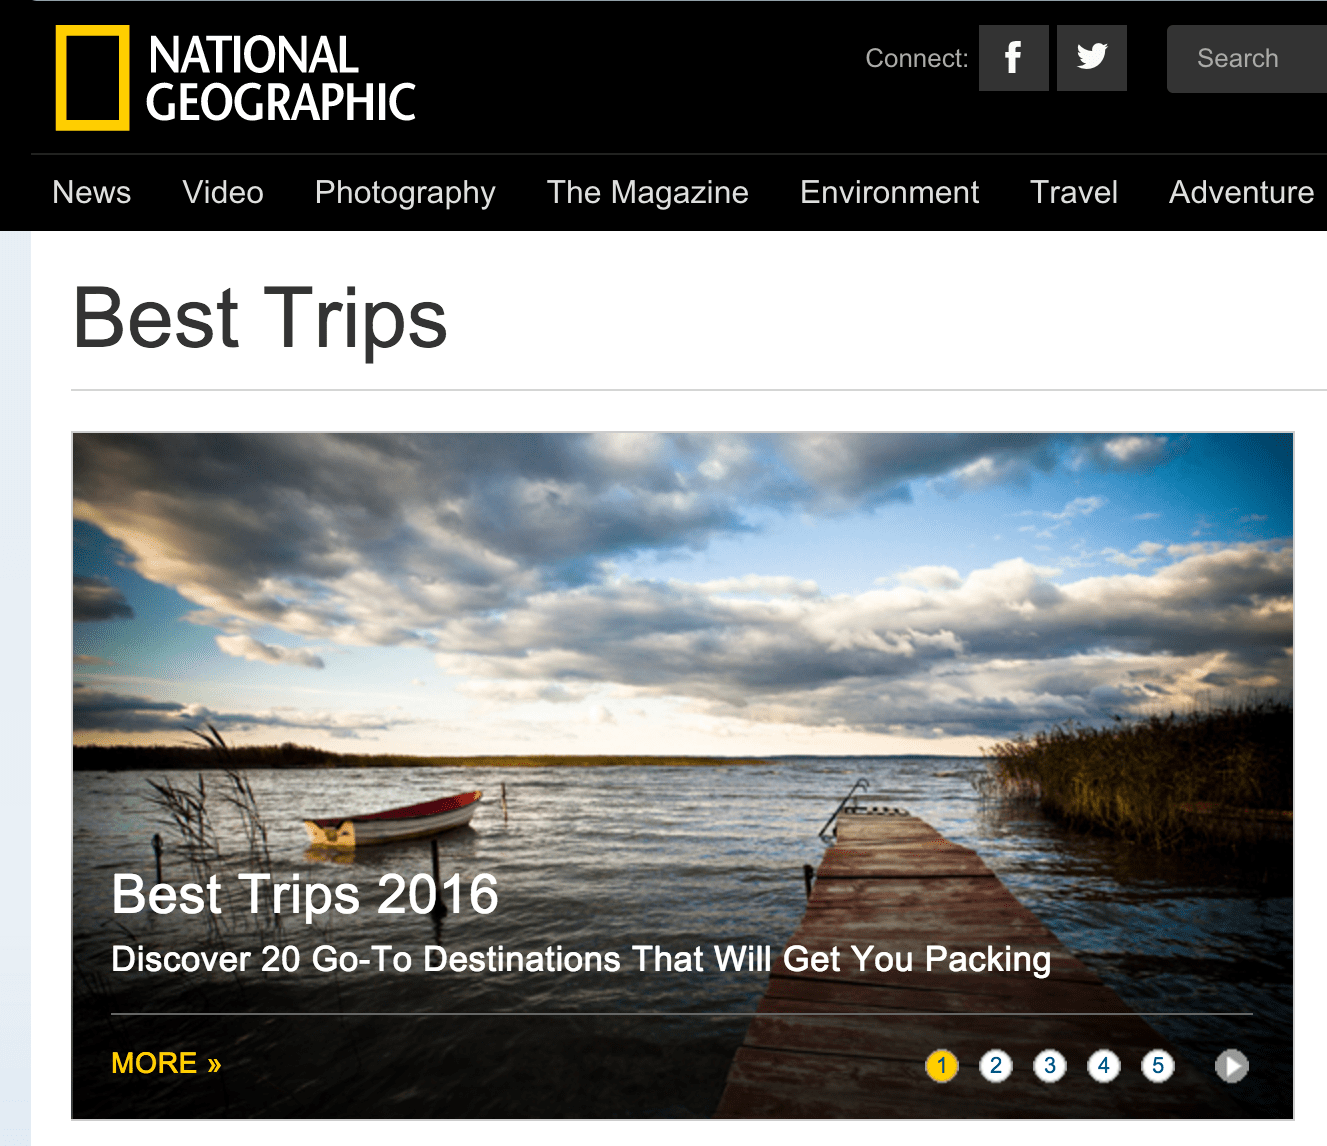 National Geographic Best Trips 2016